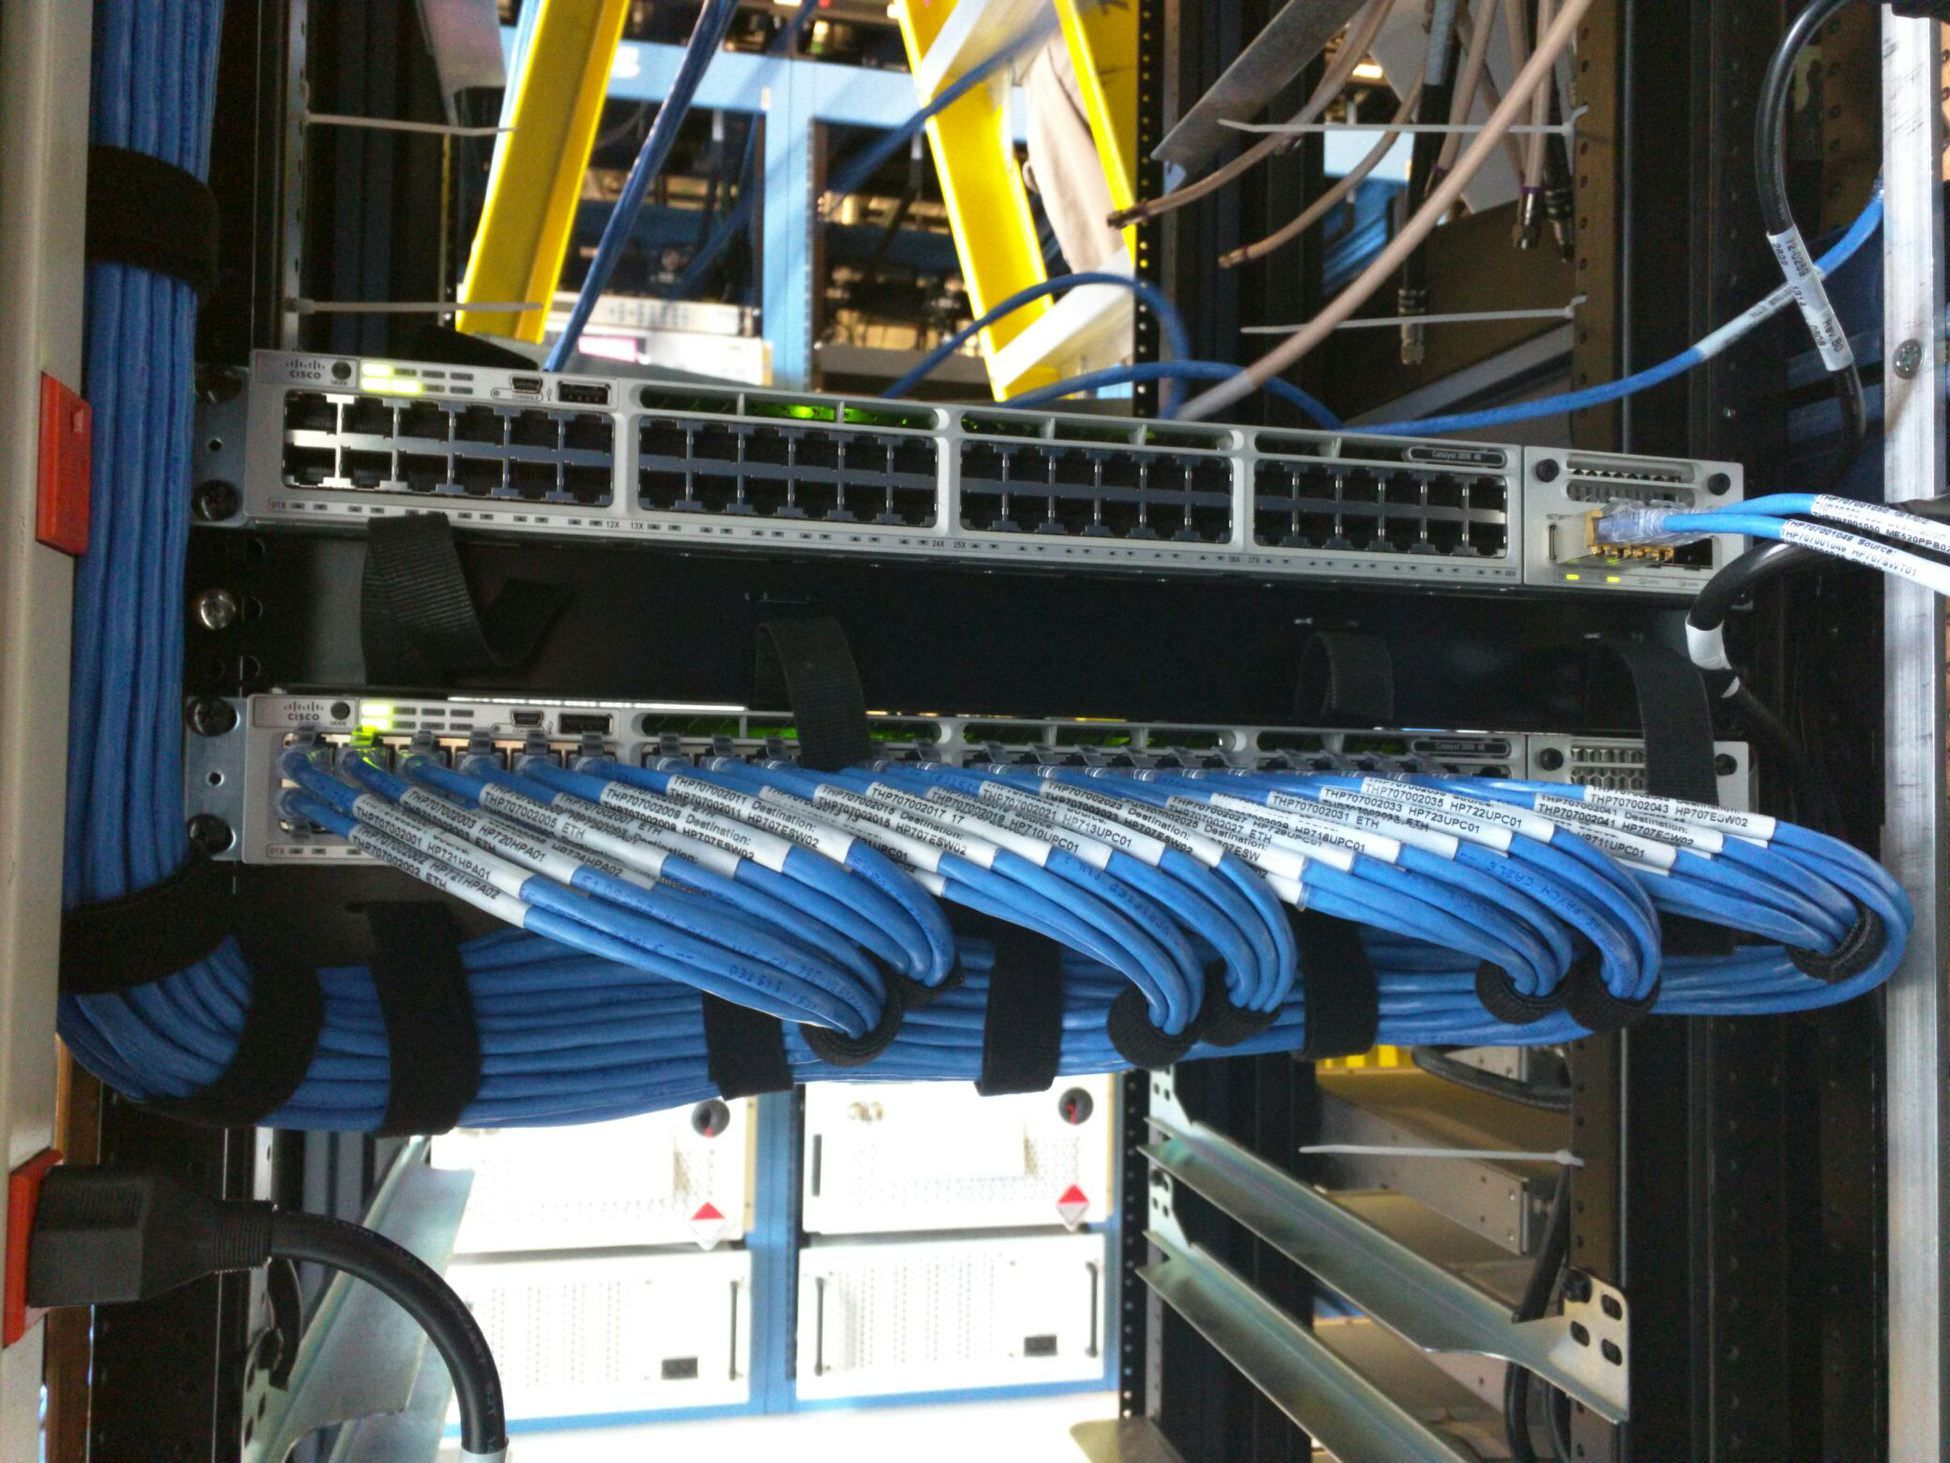 medium resolution of network cable in data closet setting up a small business cisco network